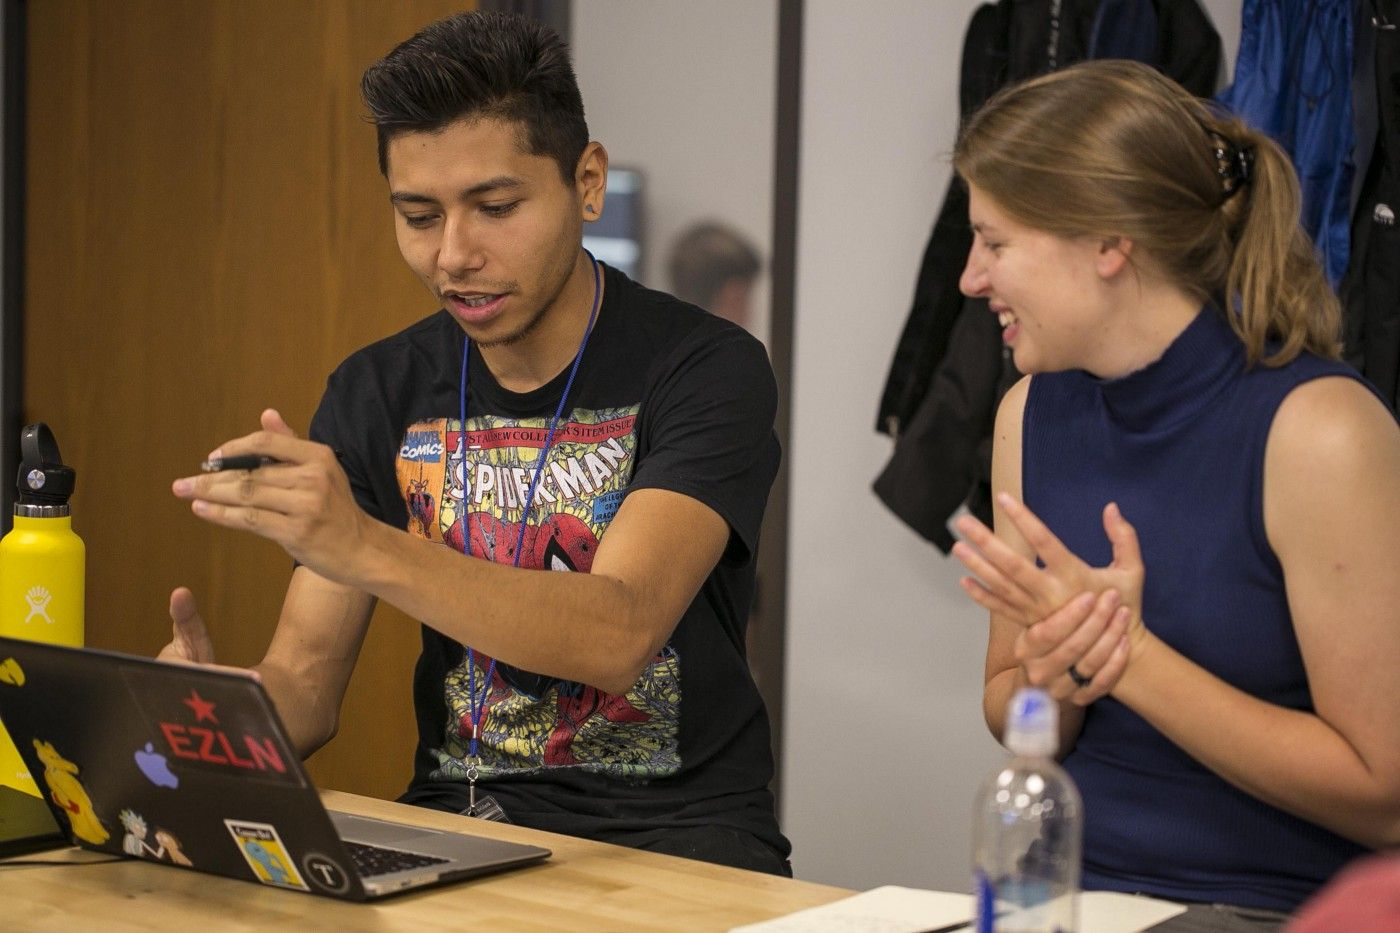 A man and a woman are animatedly talking together while looking onto the same laptop screen.